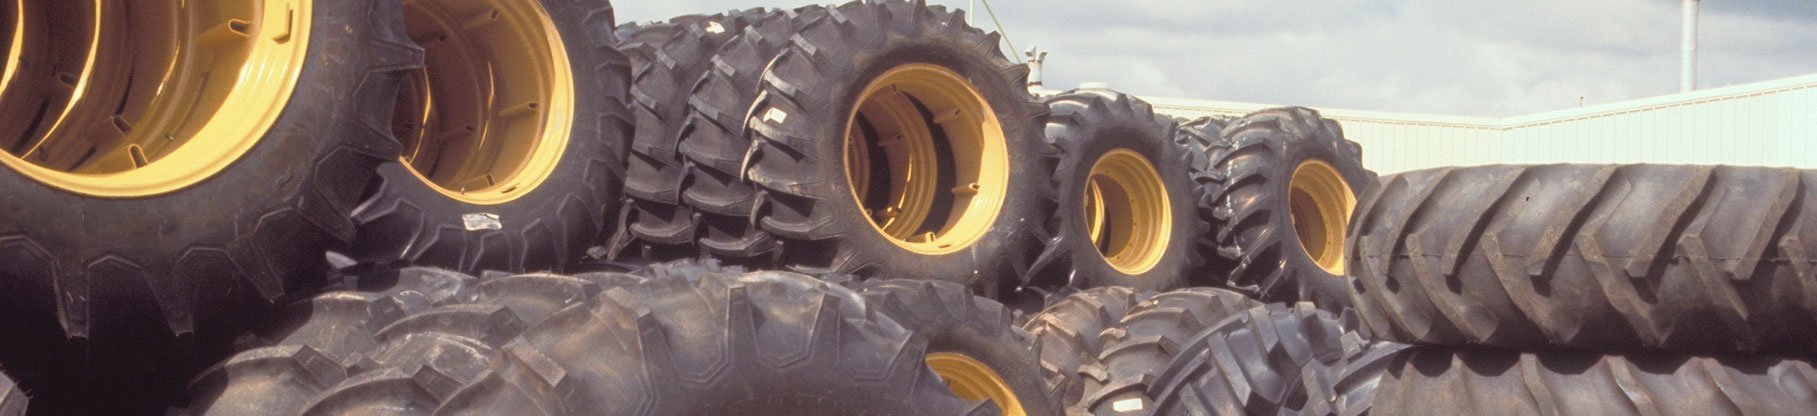 Agricultural and Commercial Tire Services